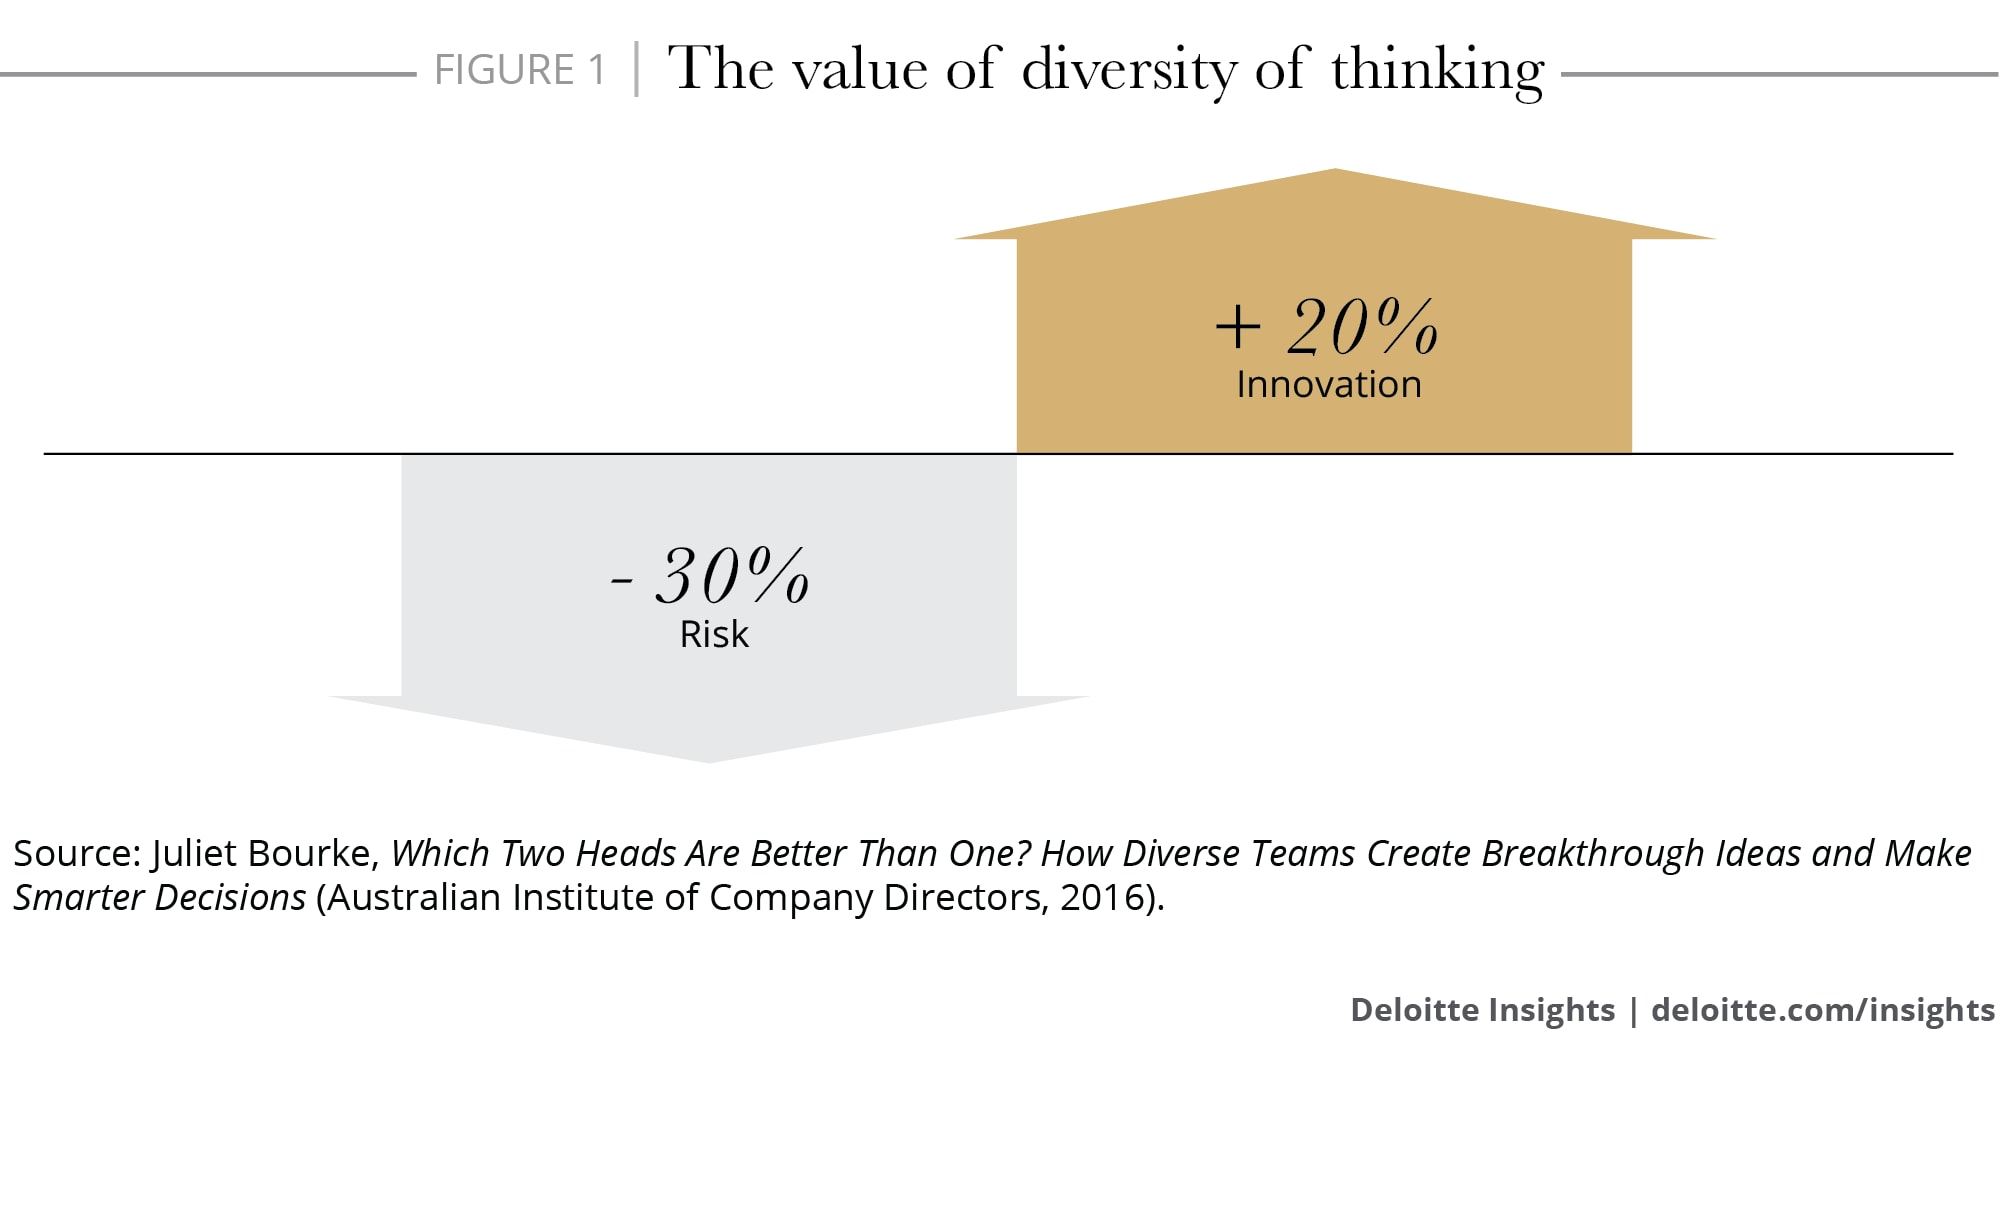 The value of diversity of thinking